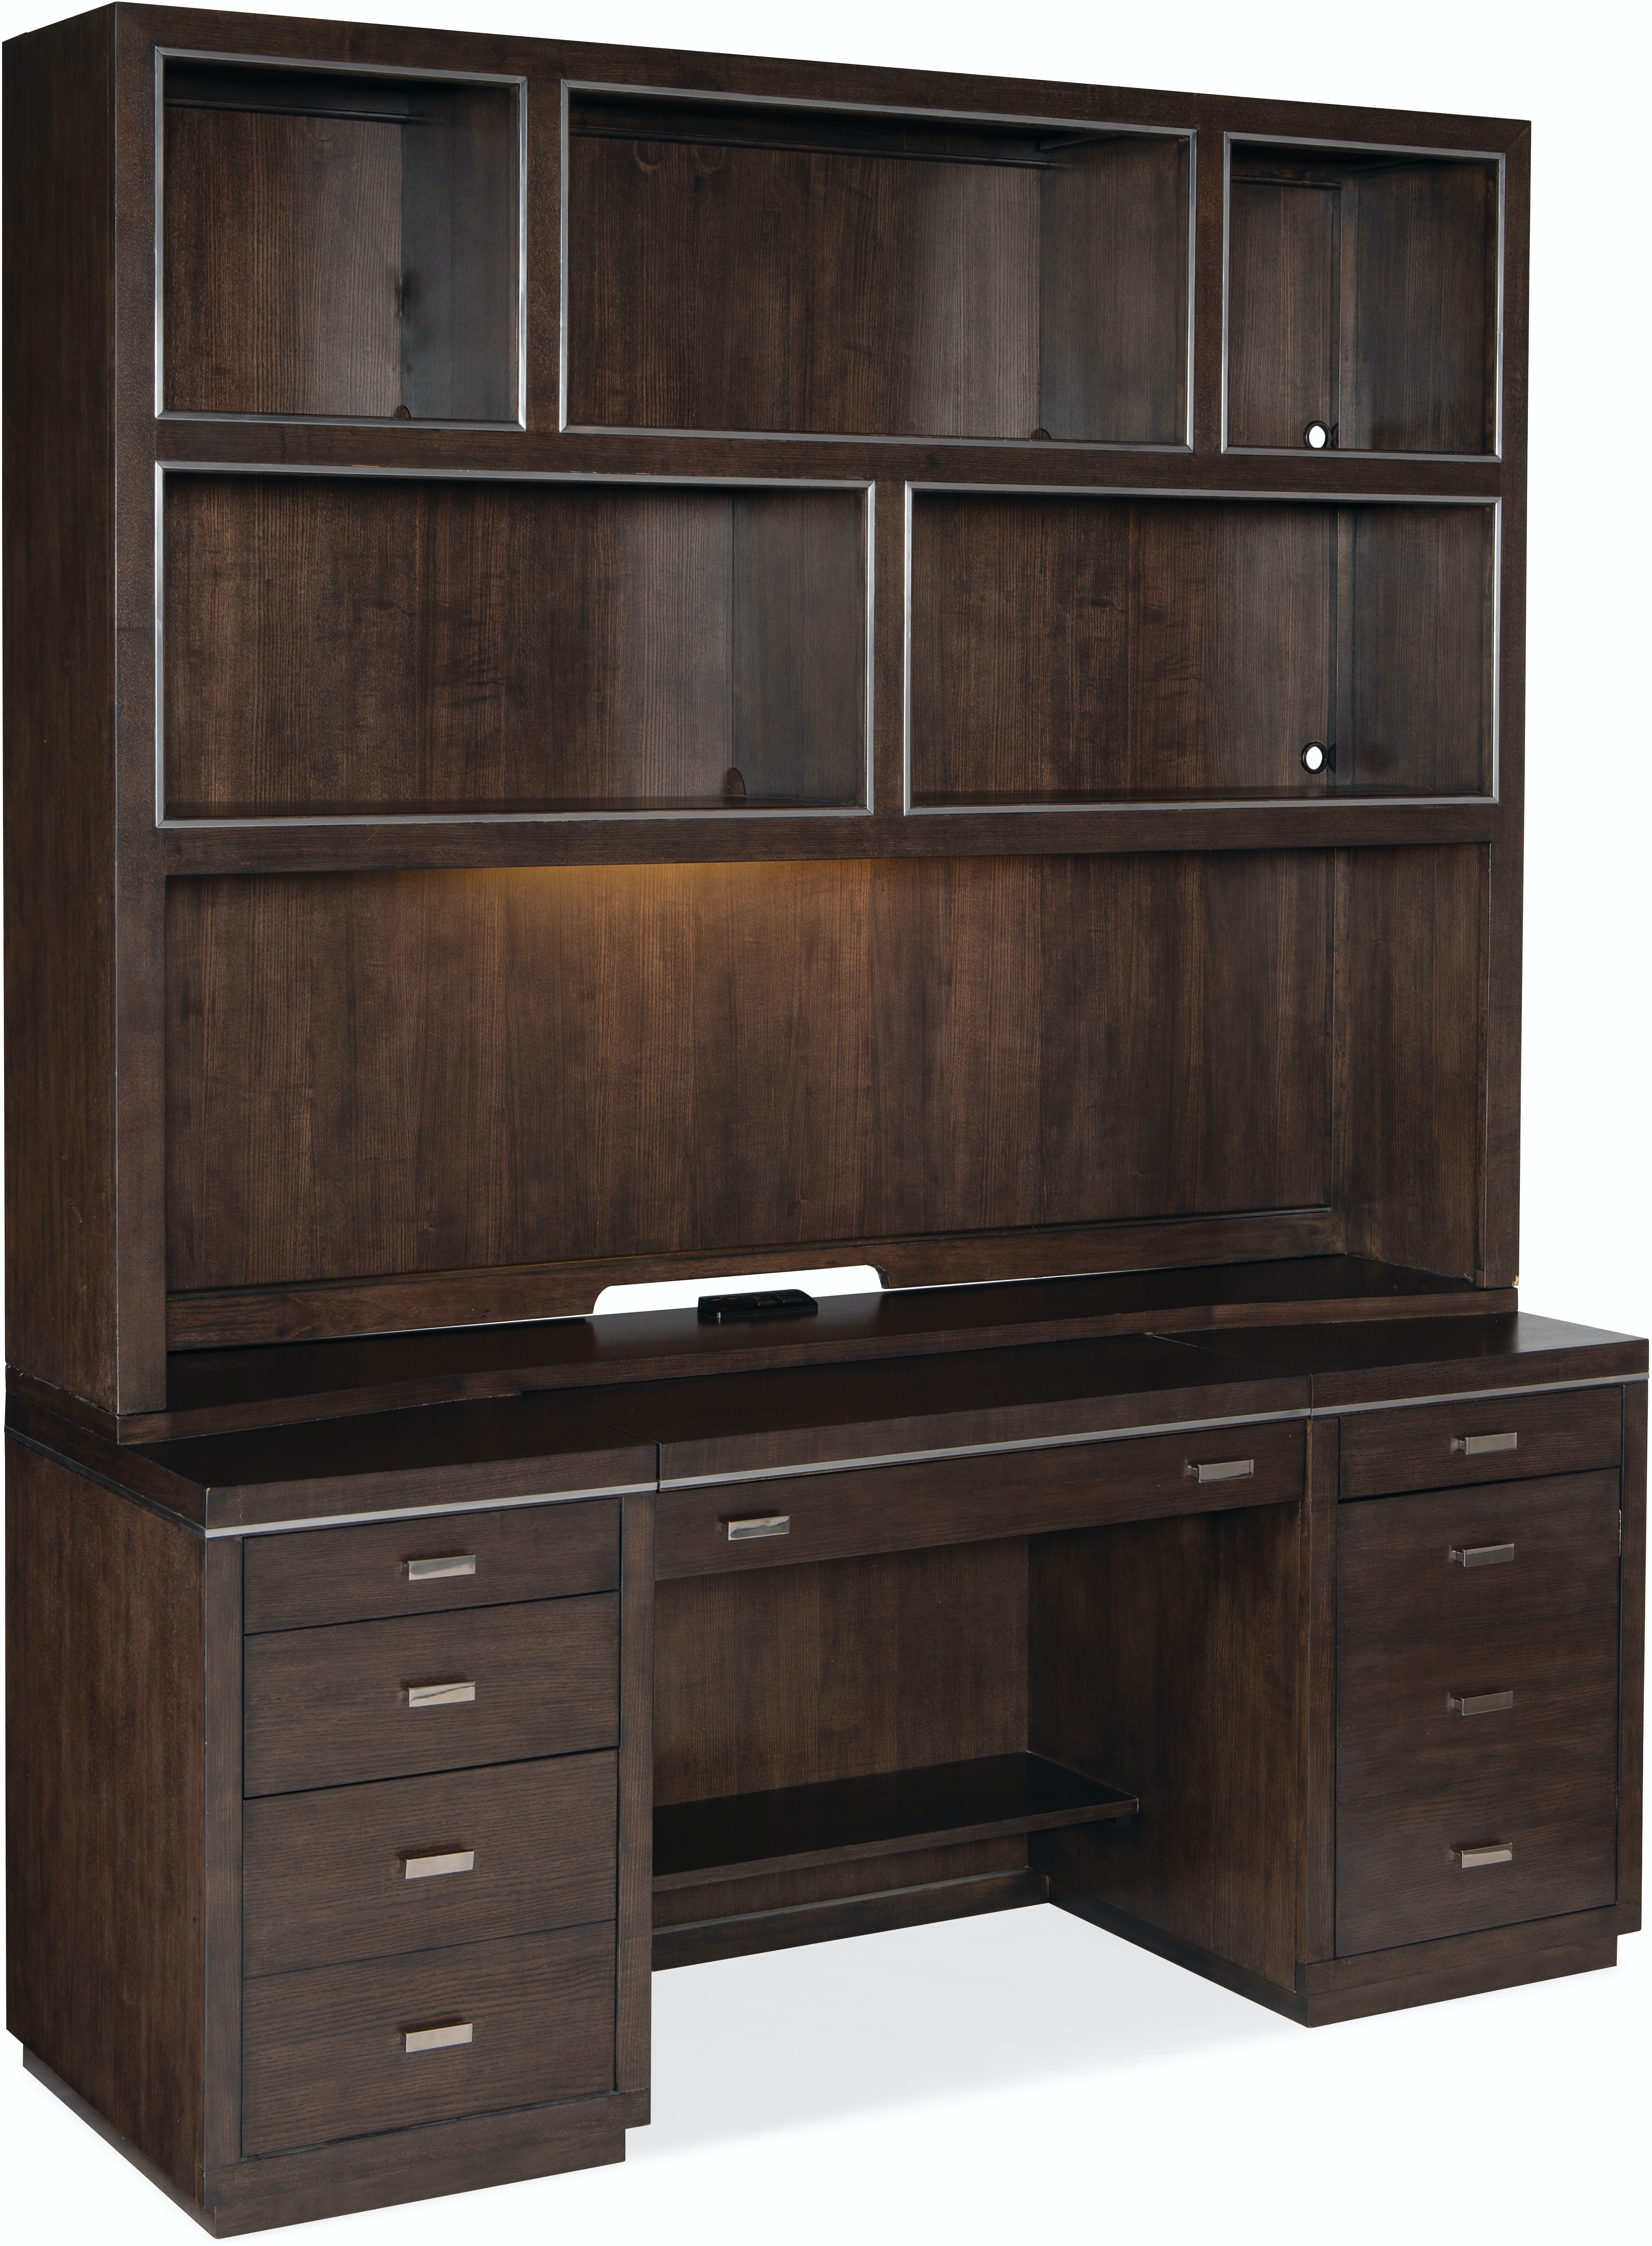 House Blend Credenza with Hutch by Hooker Furniture at Stoney Creek Furniture